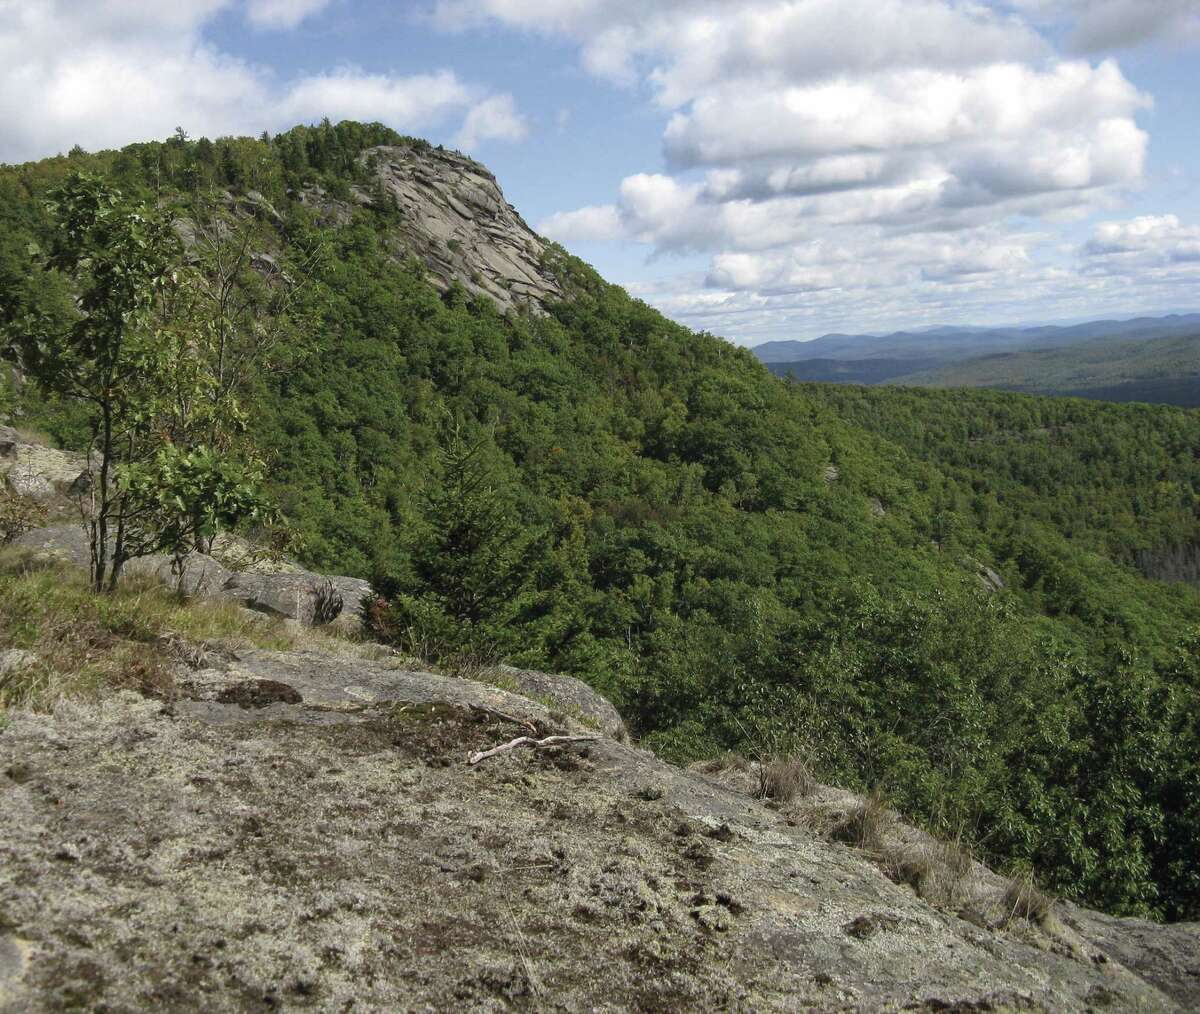 The summit of Moxham Mountain from the trail. Located in Minerva, the mountain is one of a number of spots in the Adirondacksthat Protect the Adirondacksrecommends for hikers looking to avoid the crowds at the High Peaks. (Herb Terns / Times Union)